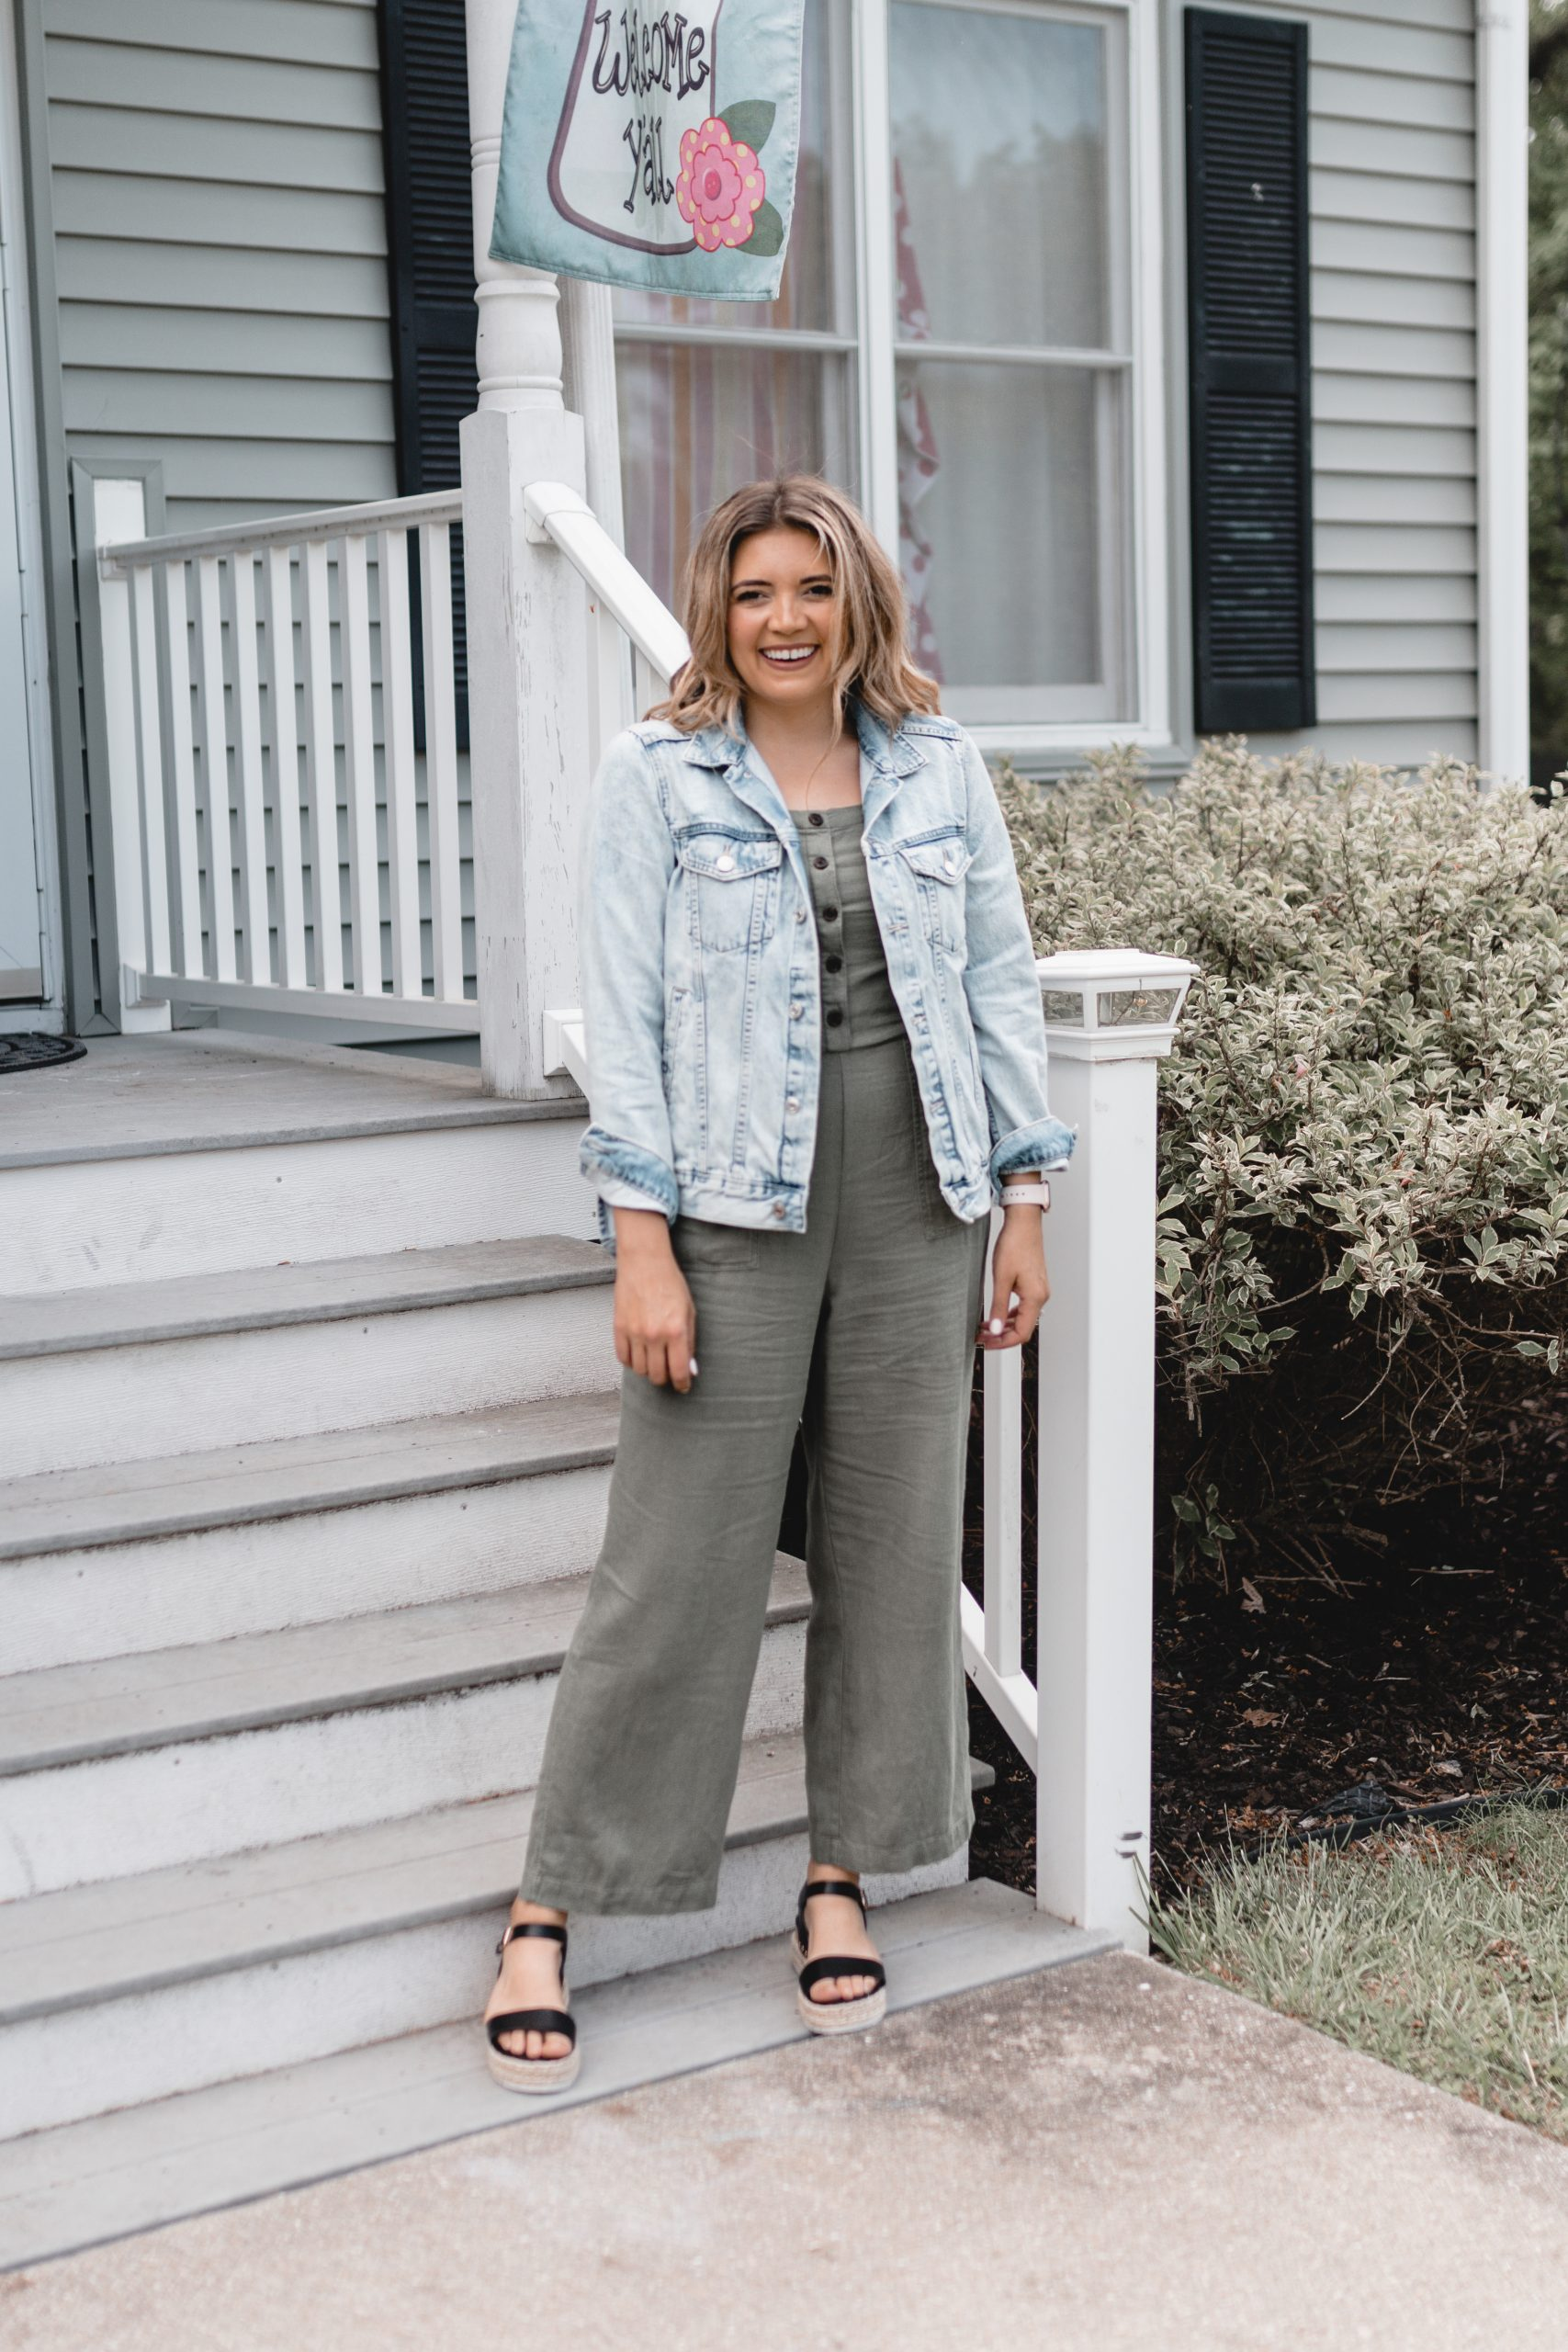 Virginia blogger, Lauren Dix, shares over five jumpsuit outfits using an affordable Old Navy jumpsuit!